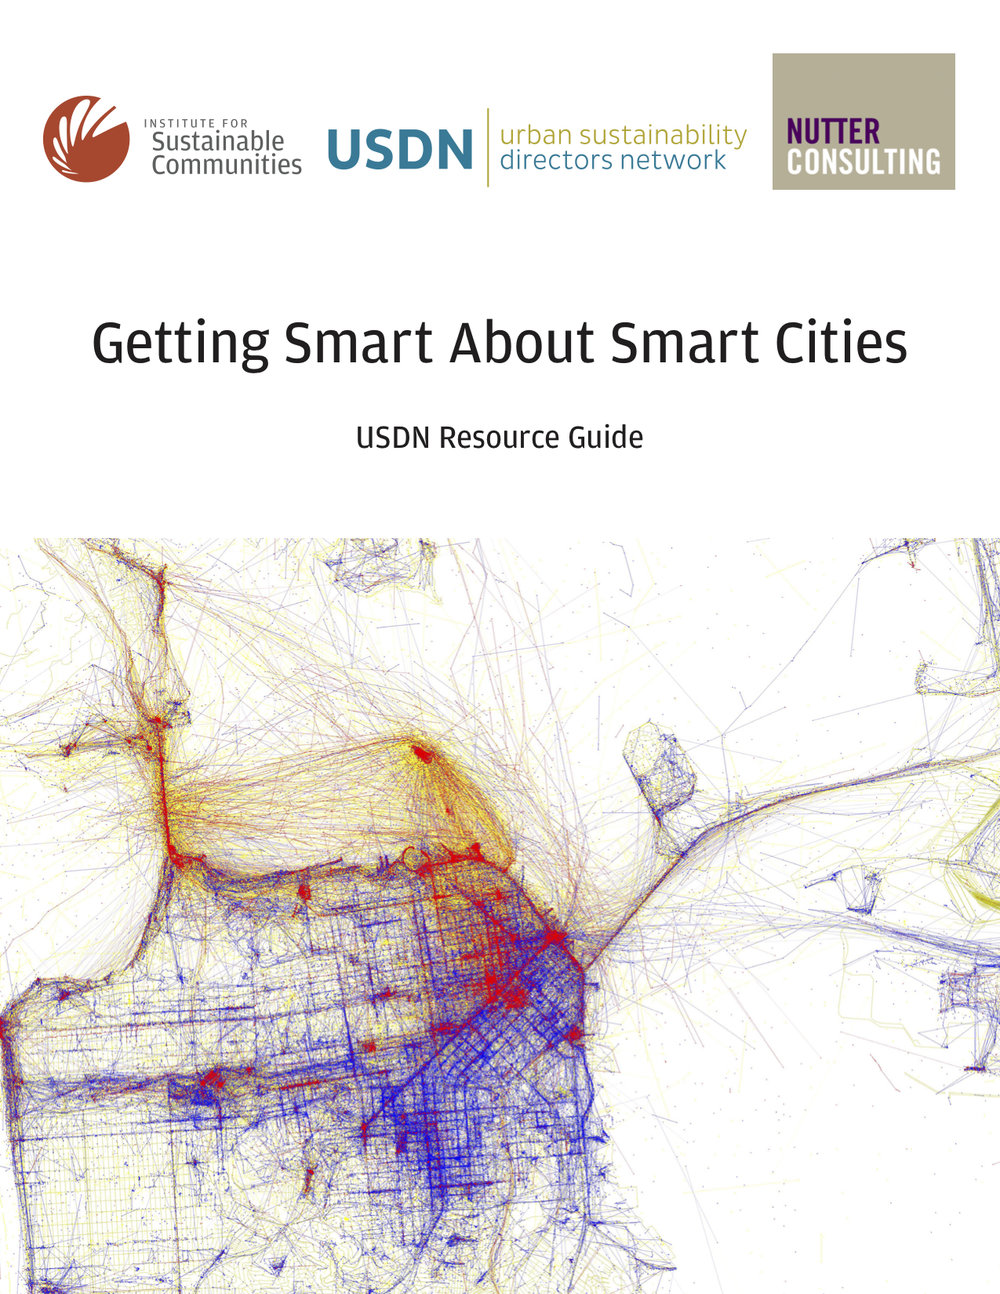 The Getting Smart About Smart Cities Resource Guide (2015)